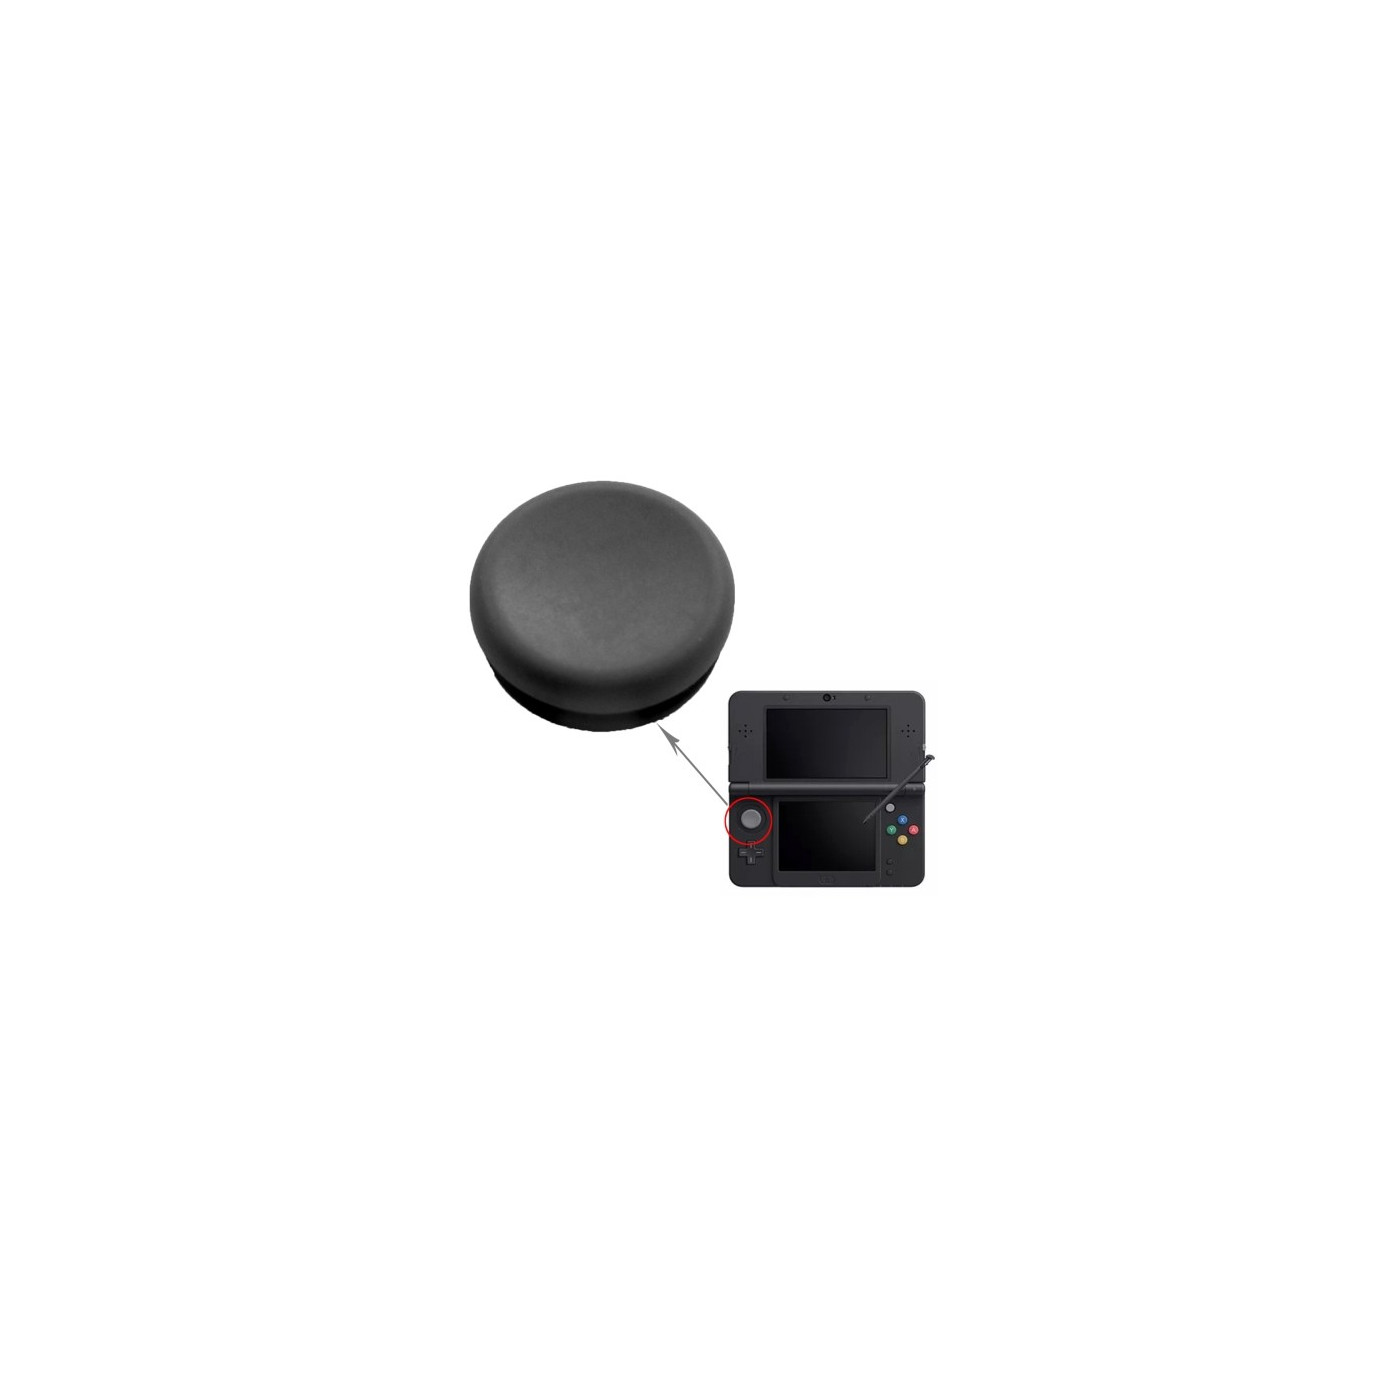 LEVER SPARE KEYS ANALOG CONTROLLER BLACK 3DS Gamepad